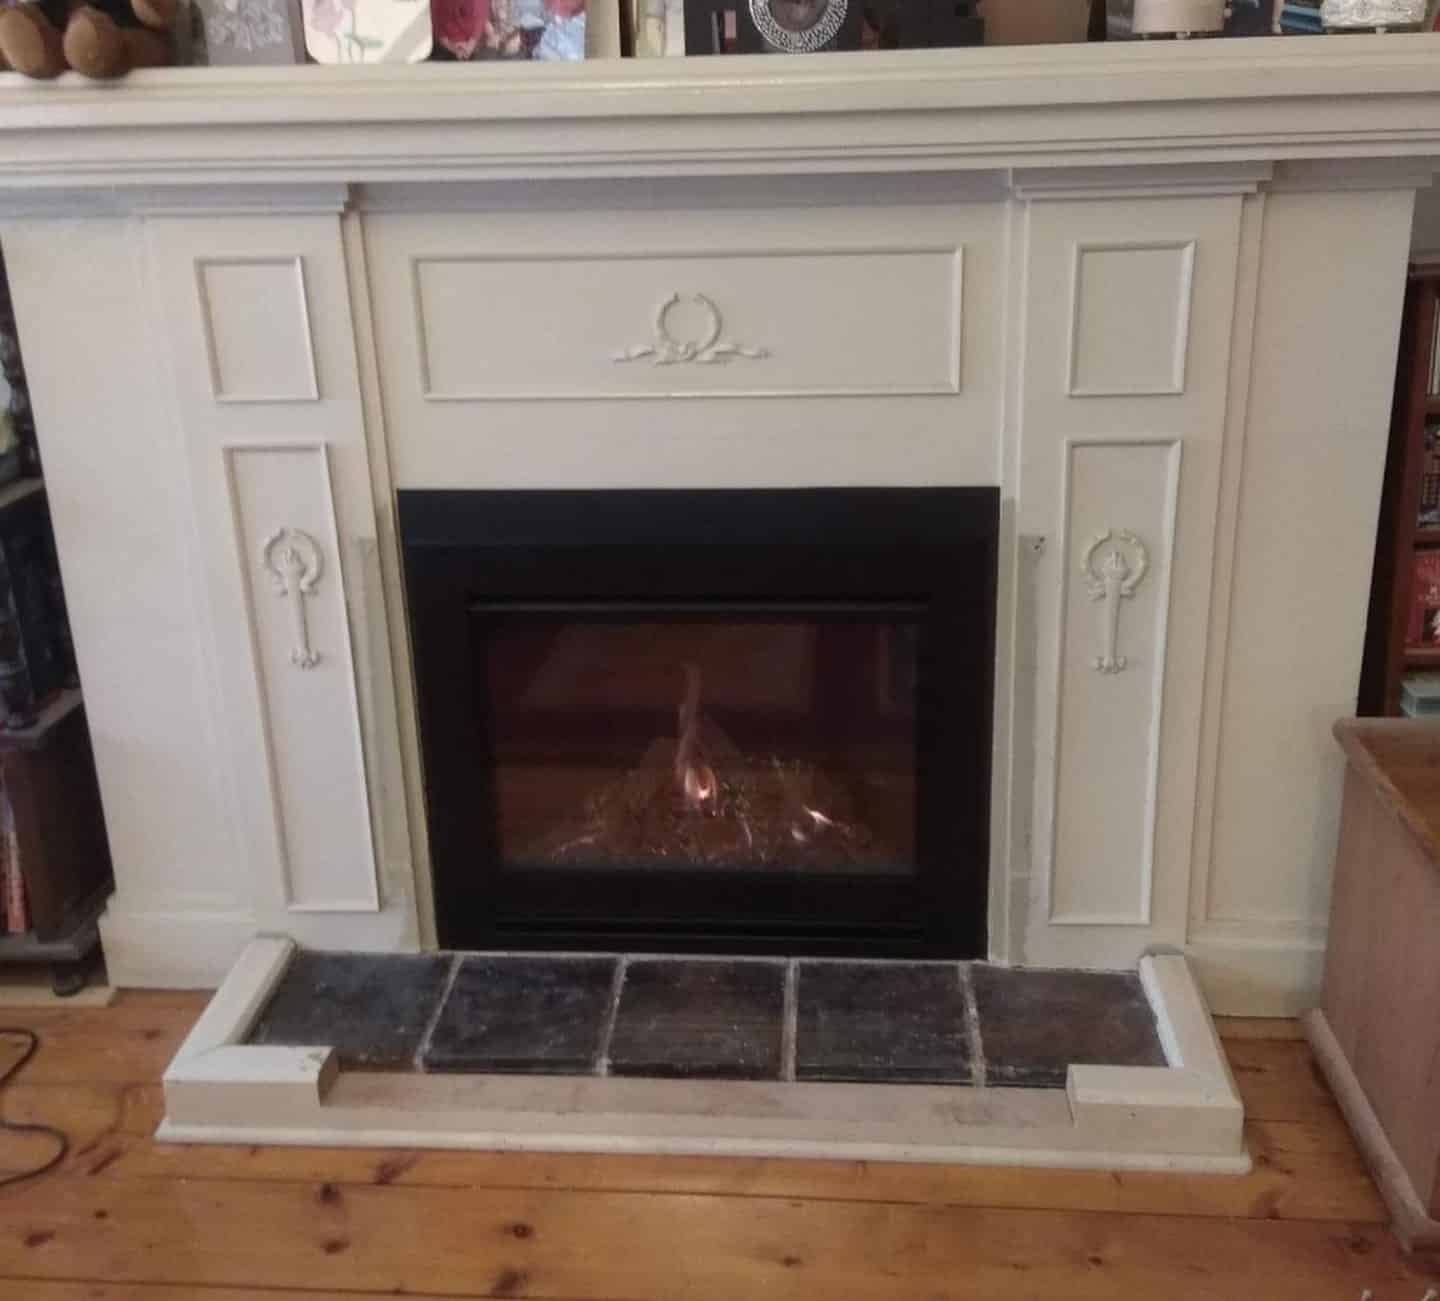 Escea DF Series within a Victorian home, single-sided gas fire.